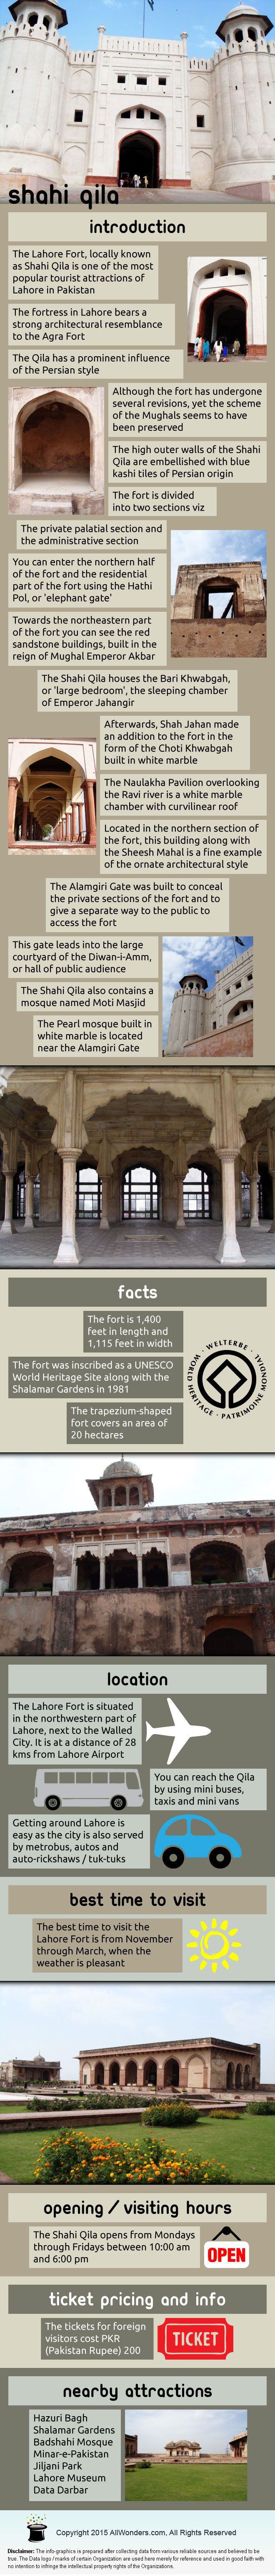 Infographic showing facts and information about Shahi Qila in Lahore, Pakistan. Know about its location, best time to visit, nearby attractions and more.